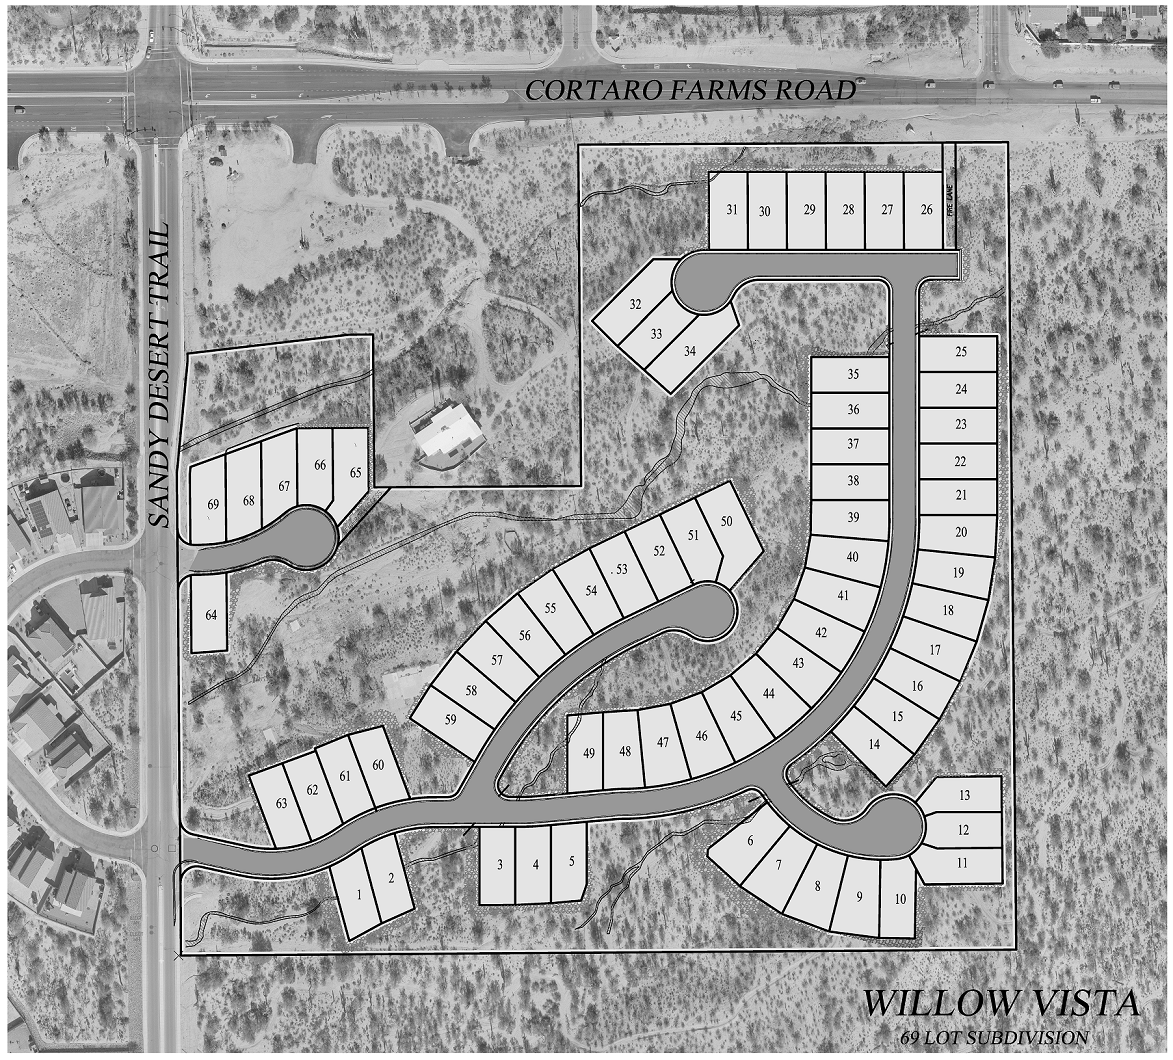 Willow Vista Preliminary Plat Layout